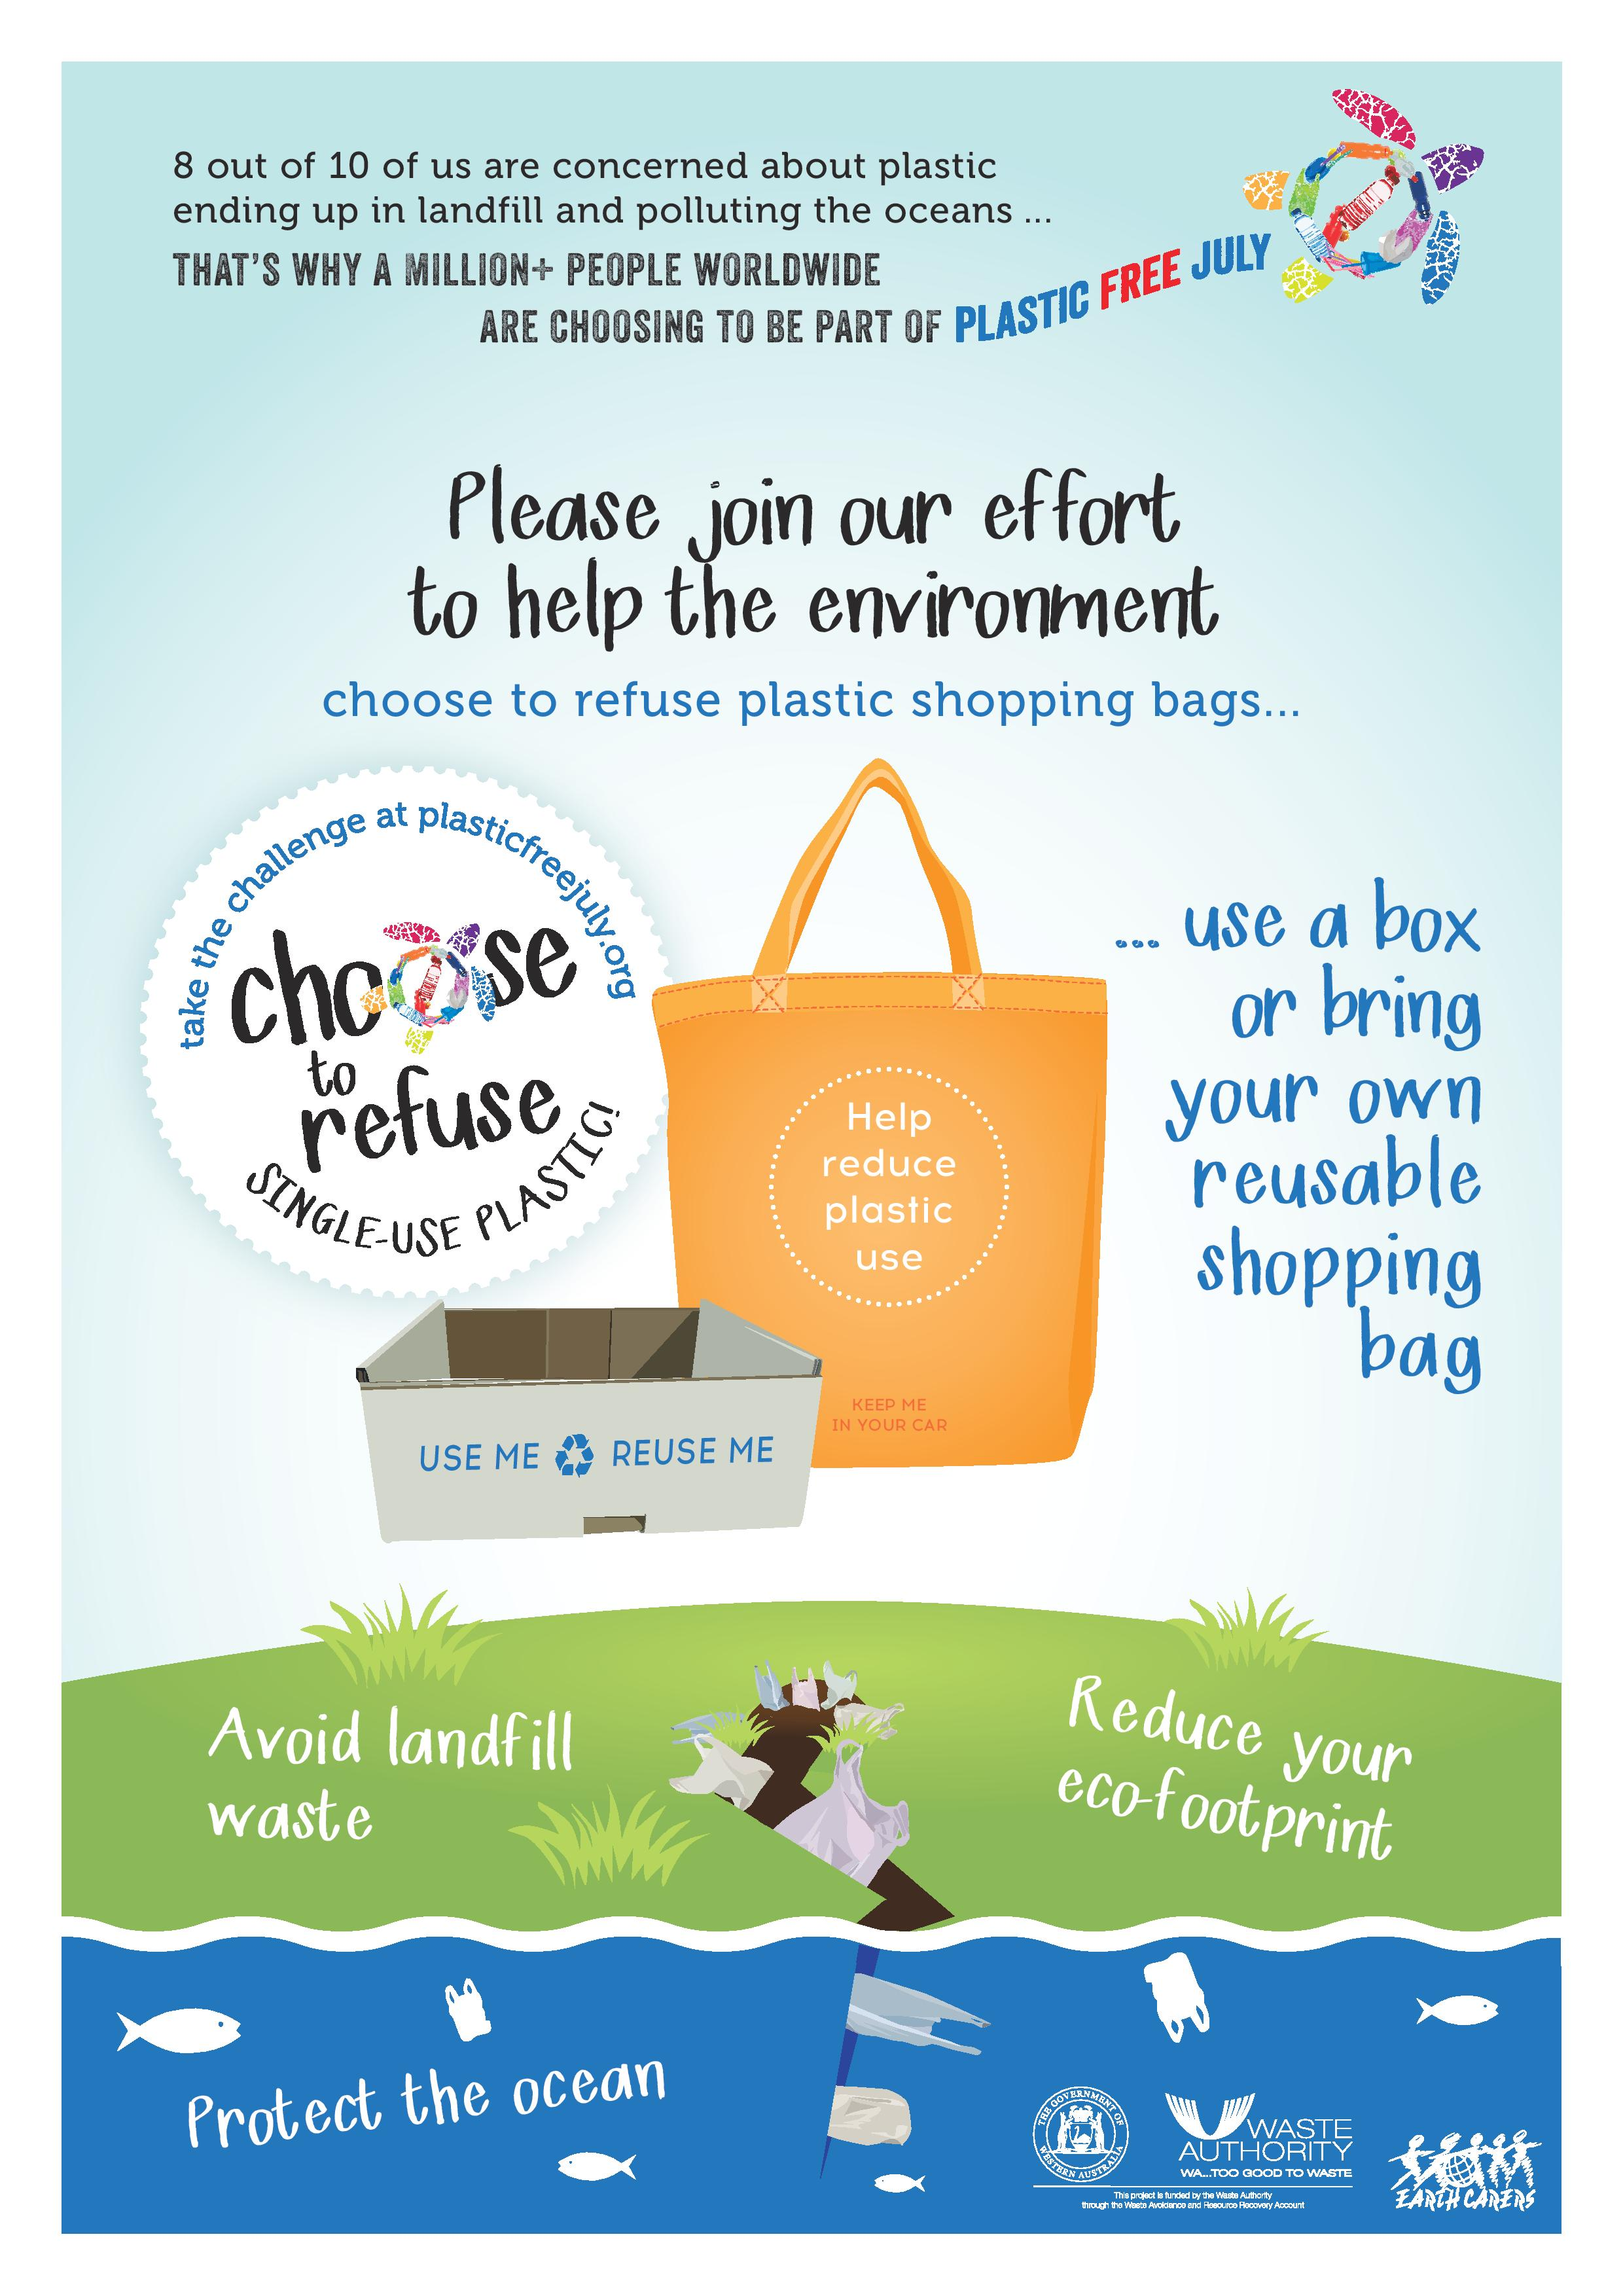 Plastic Free July tool kit poster bags+boxes worldwide (1)-page-001.jpg